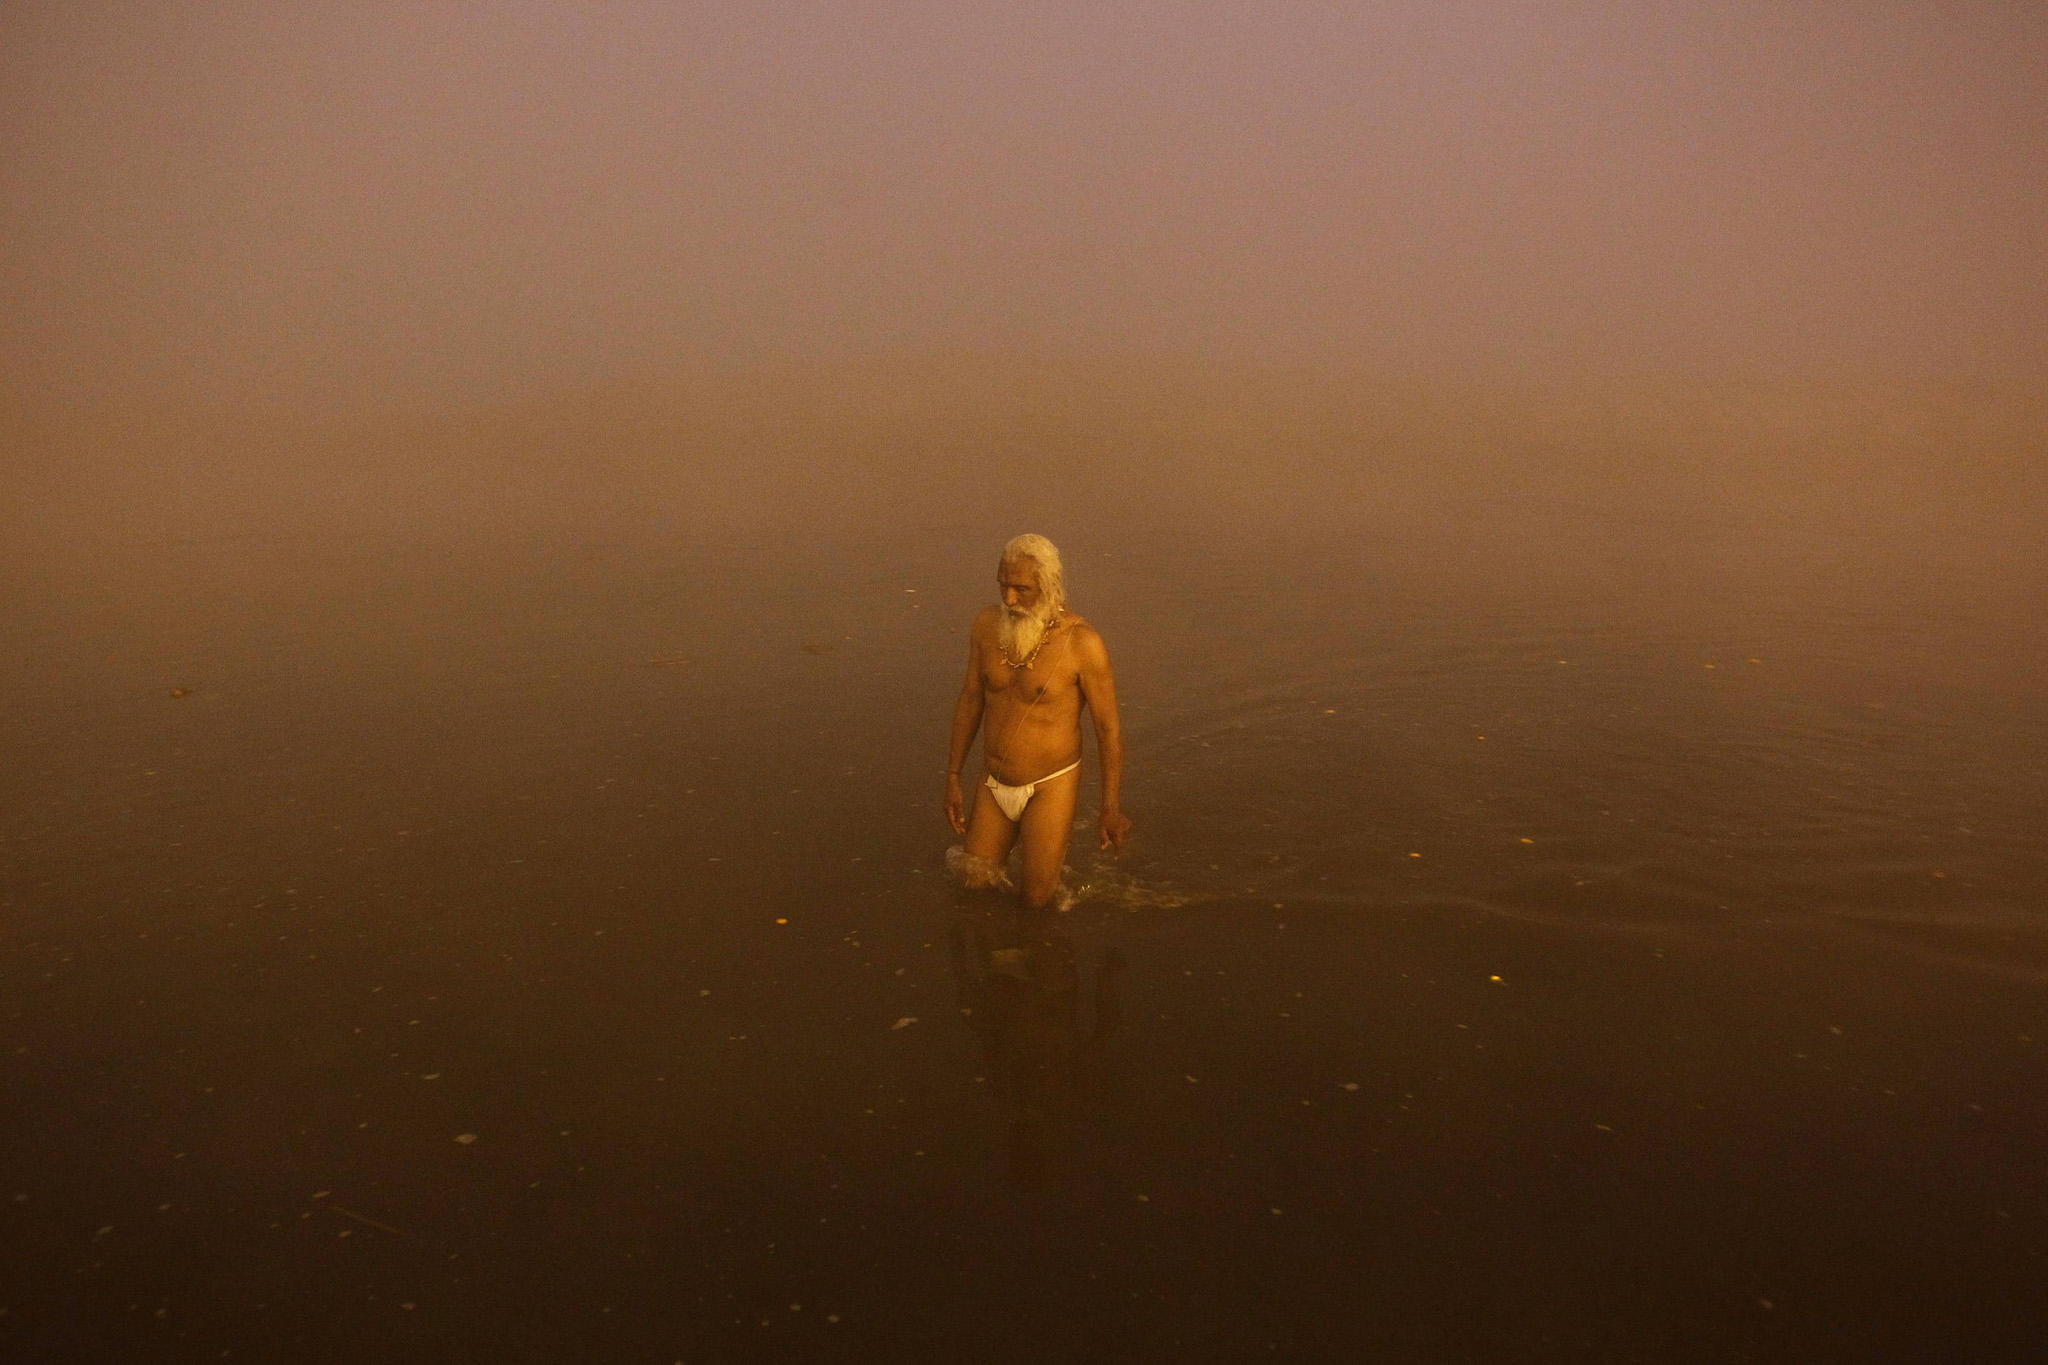 A Sadhu or a Hindu holy man walks after taking a holy bath at Sangam, the confluence of the Ganges, Yamuna and Saraswati rivers, on a foggy winter morning, on the occasion of Makar Sankranti festival in the northern Indian city of Allahabad January 14, 2015. Makar Sankranti is an auspicious festival celebrated by Hindus across the country that marks the start of the harvest season.